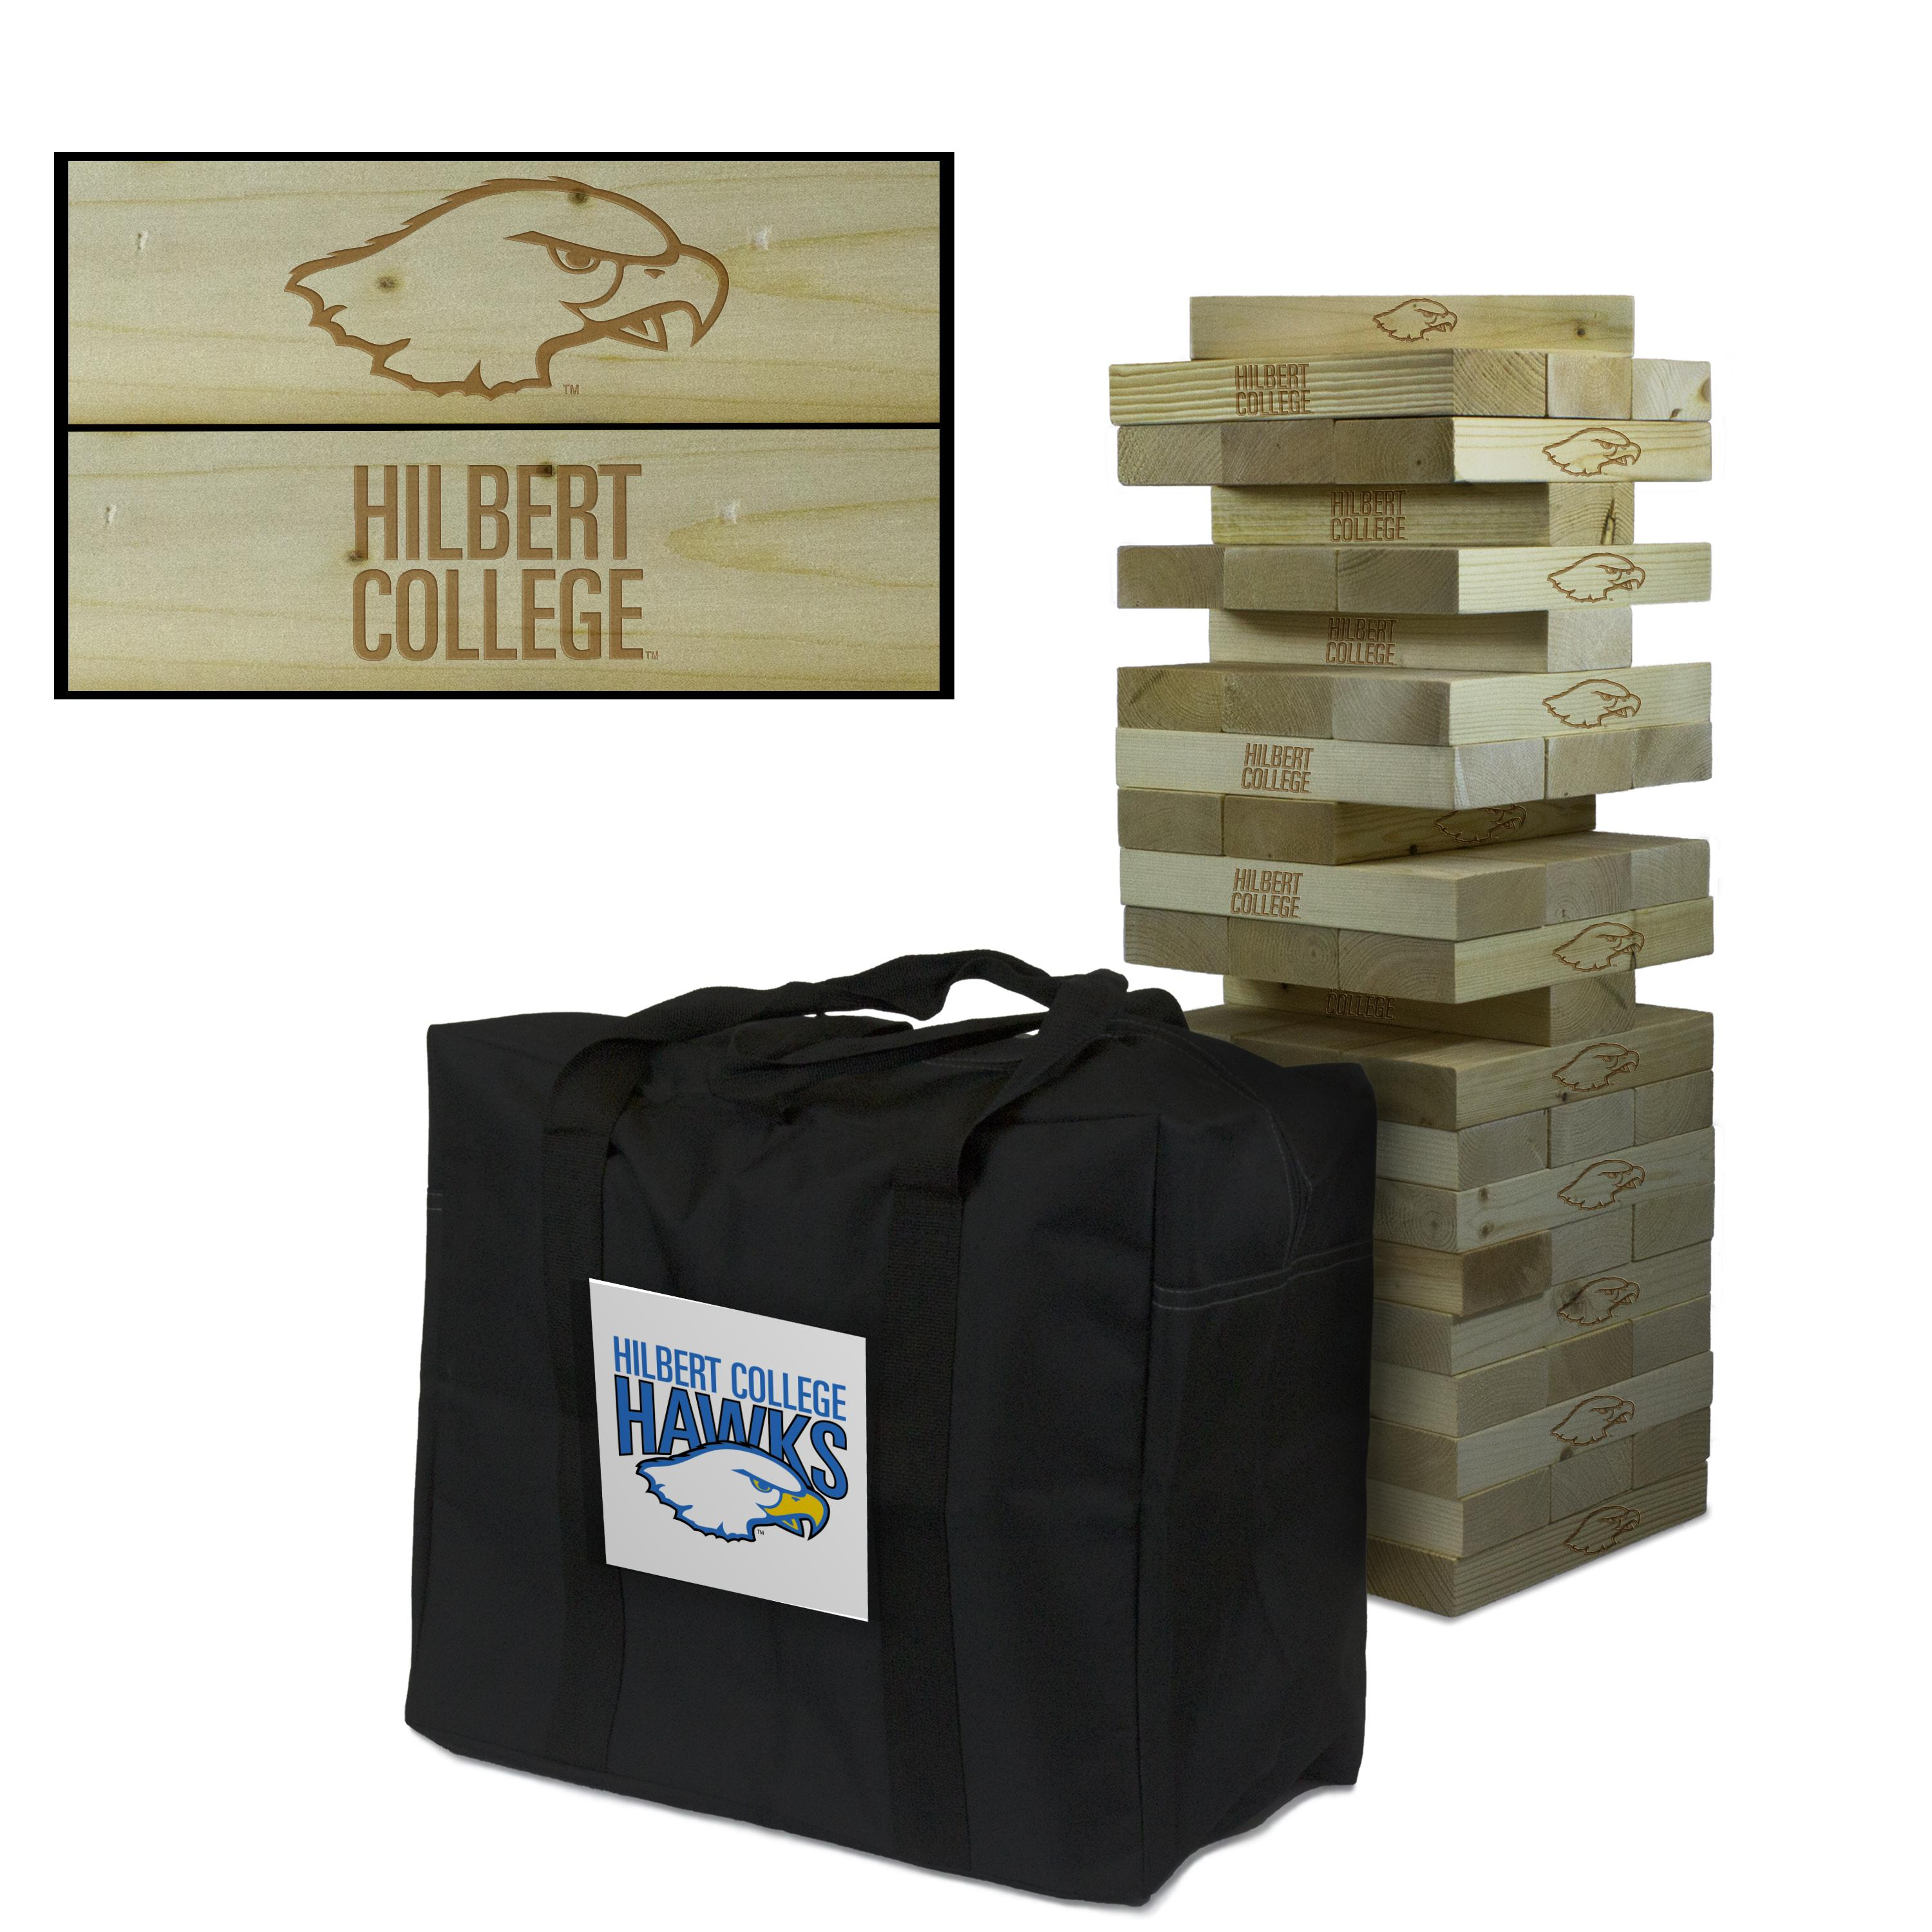 Hilbert College Hawks Giant Wooden Tumble Tower Game